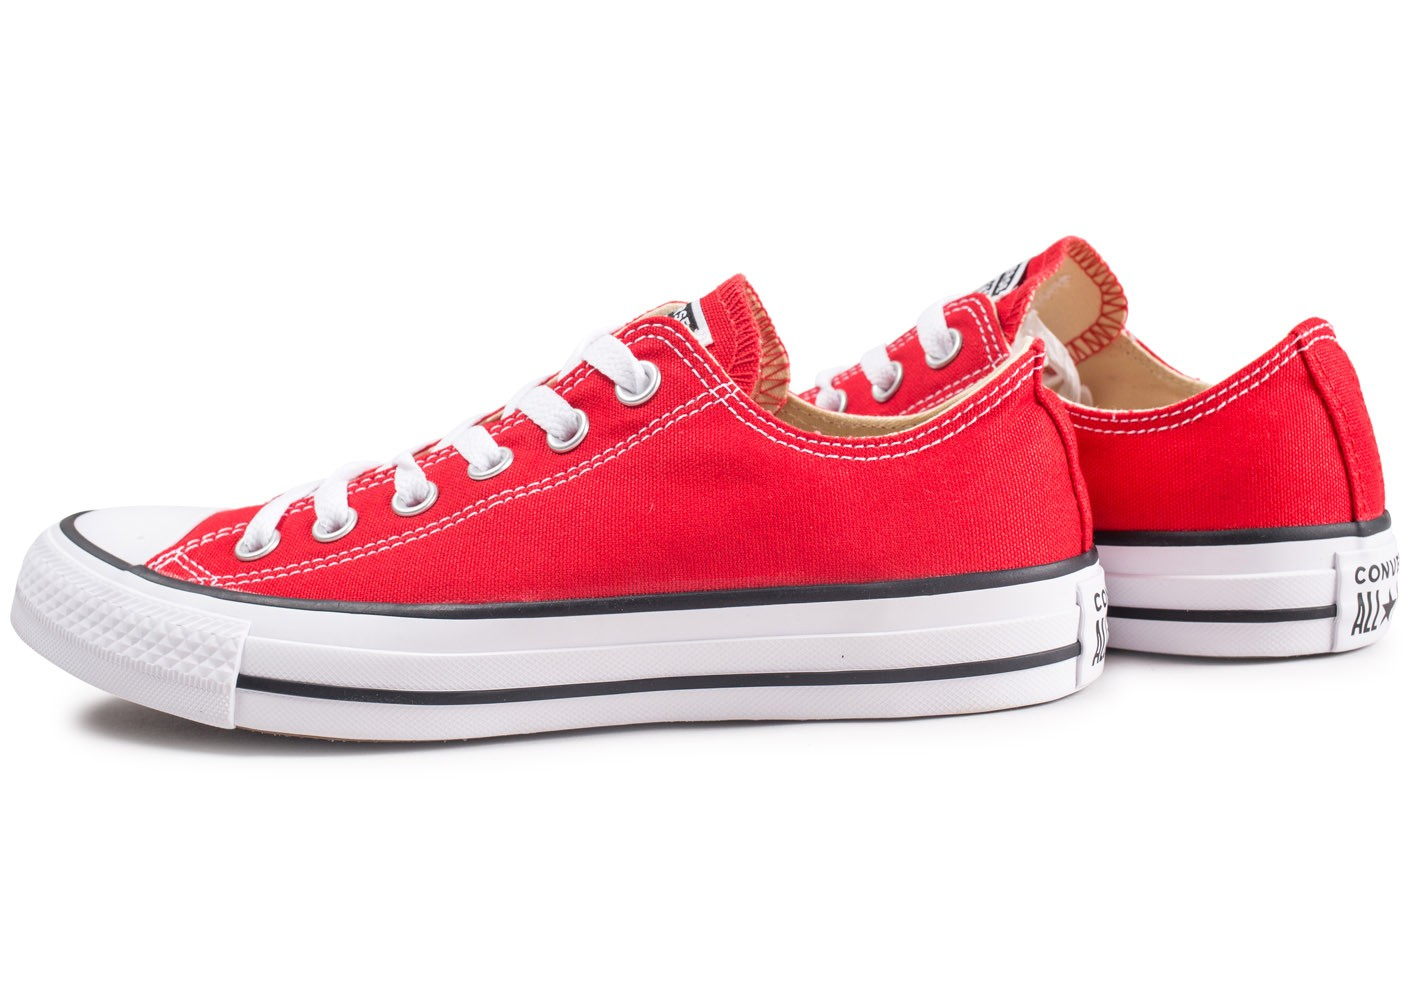 Converse Chuck Taylor All Star Low rouge - Chaussures ...